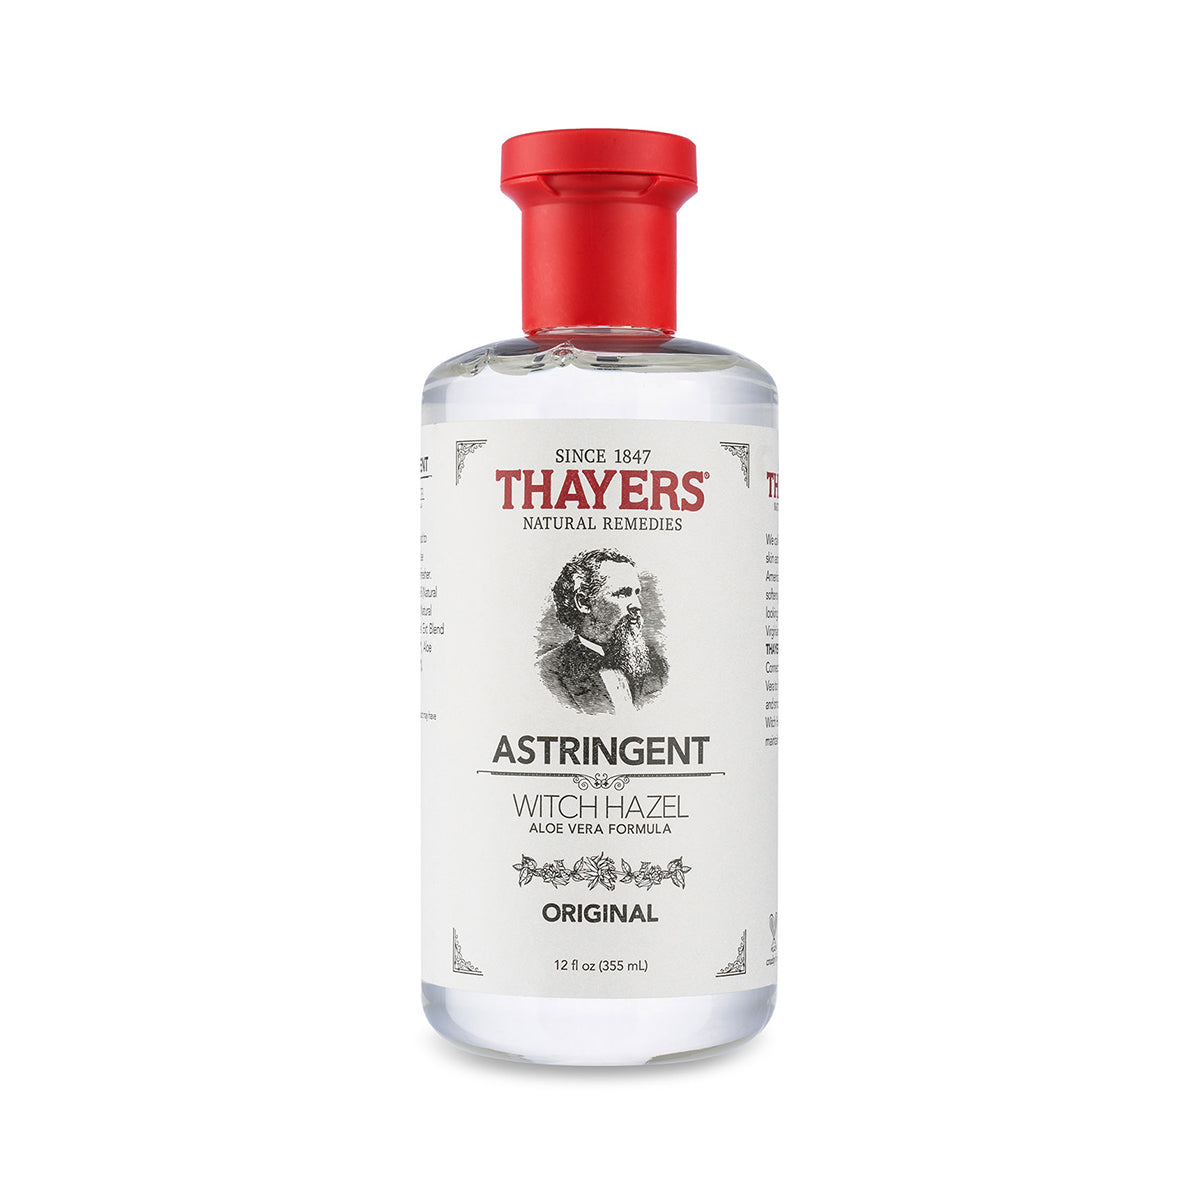 Thayers Original Astringent Toner with Aloe Vera